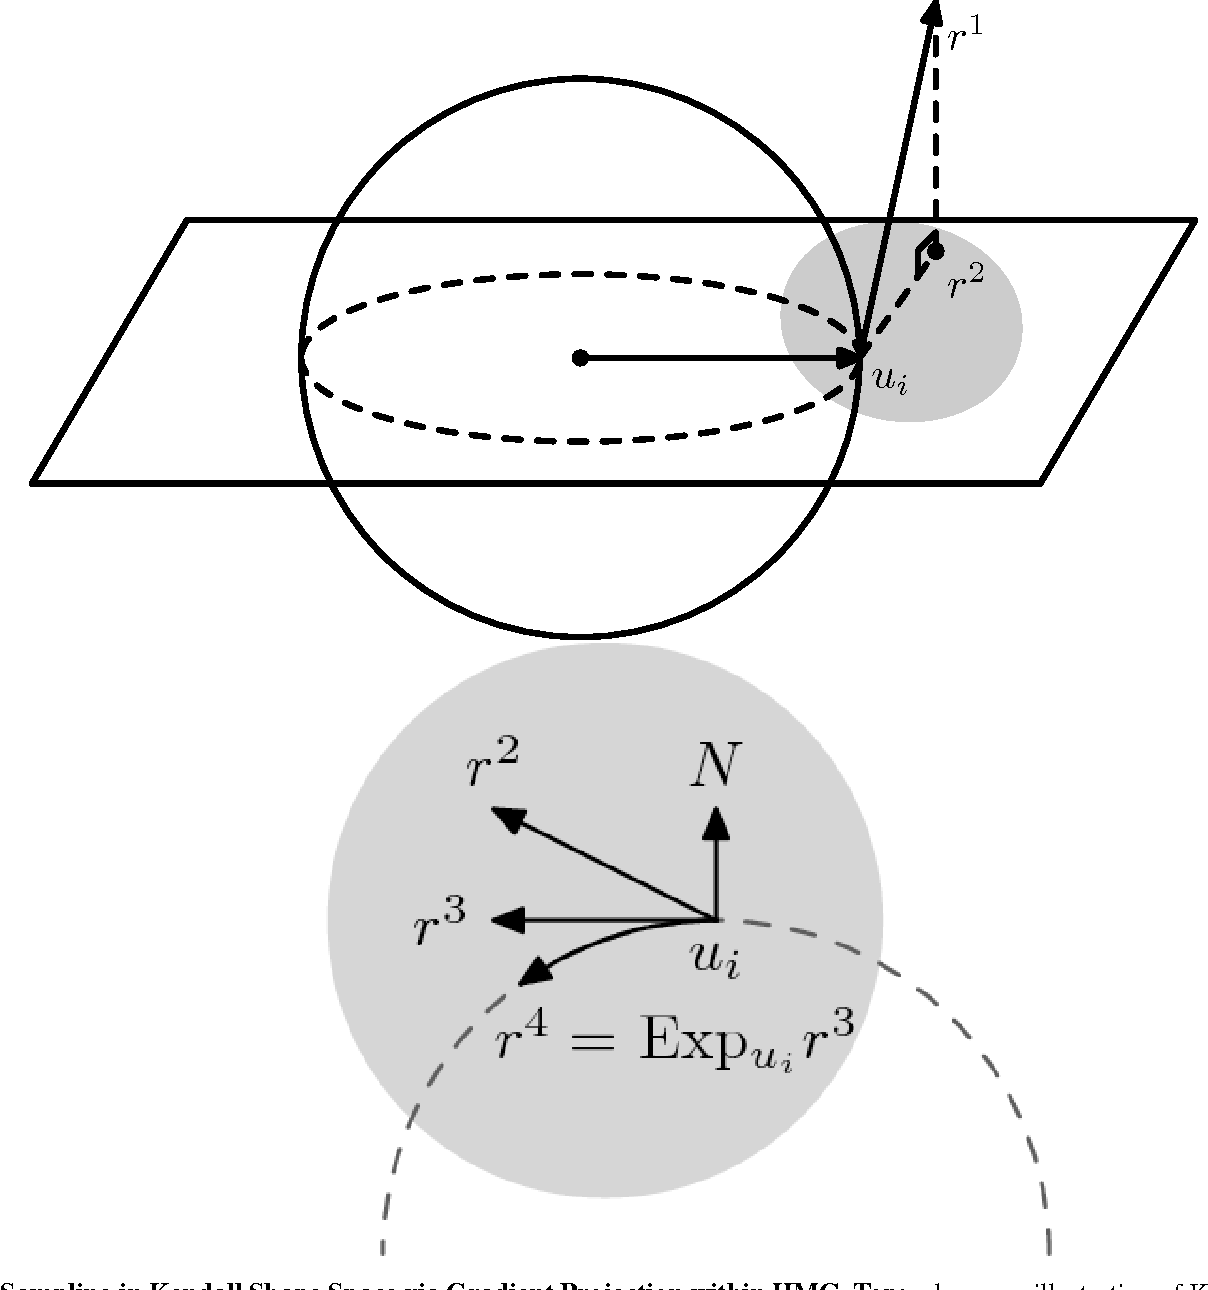 Figure 2 for Hierarchical Graphical Models for Multigroup Shape Analysis using Expectation Maximization with Sampling in Kendall's Shape Space